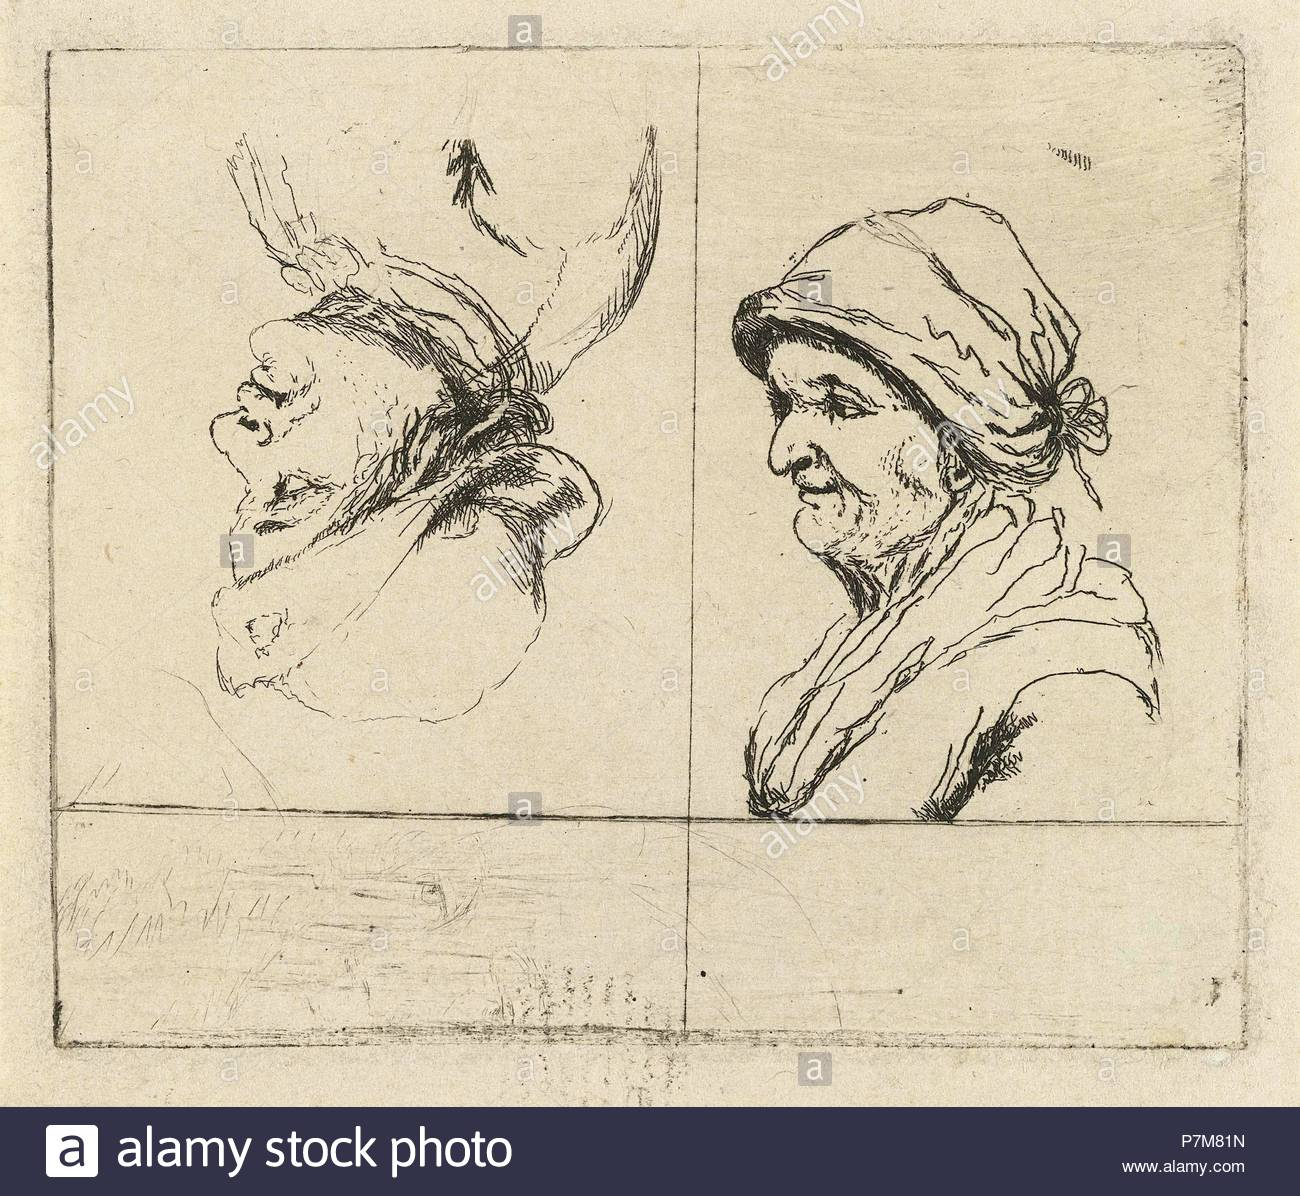 Study Sheet with two portrait busts, Marie Lambertine Coclers, 1776 - 1815. - Stock Image